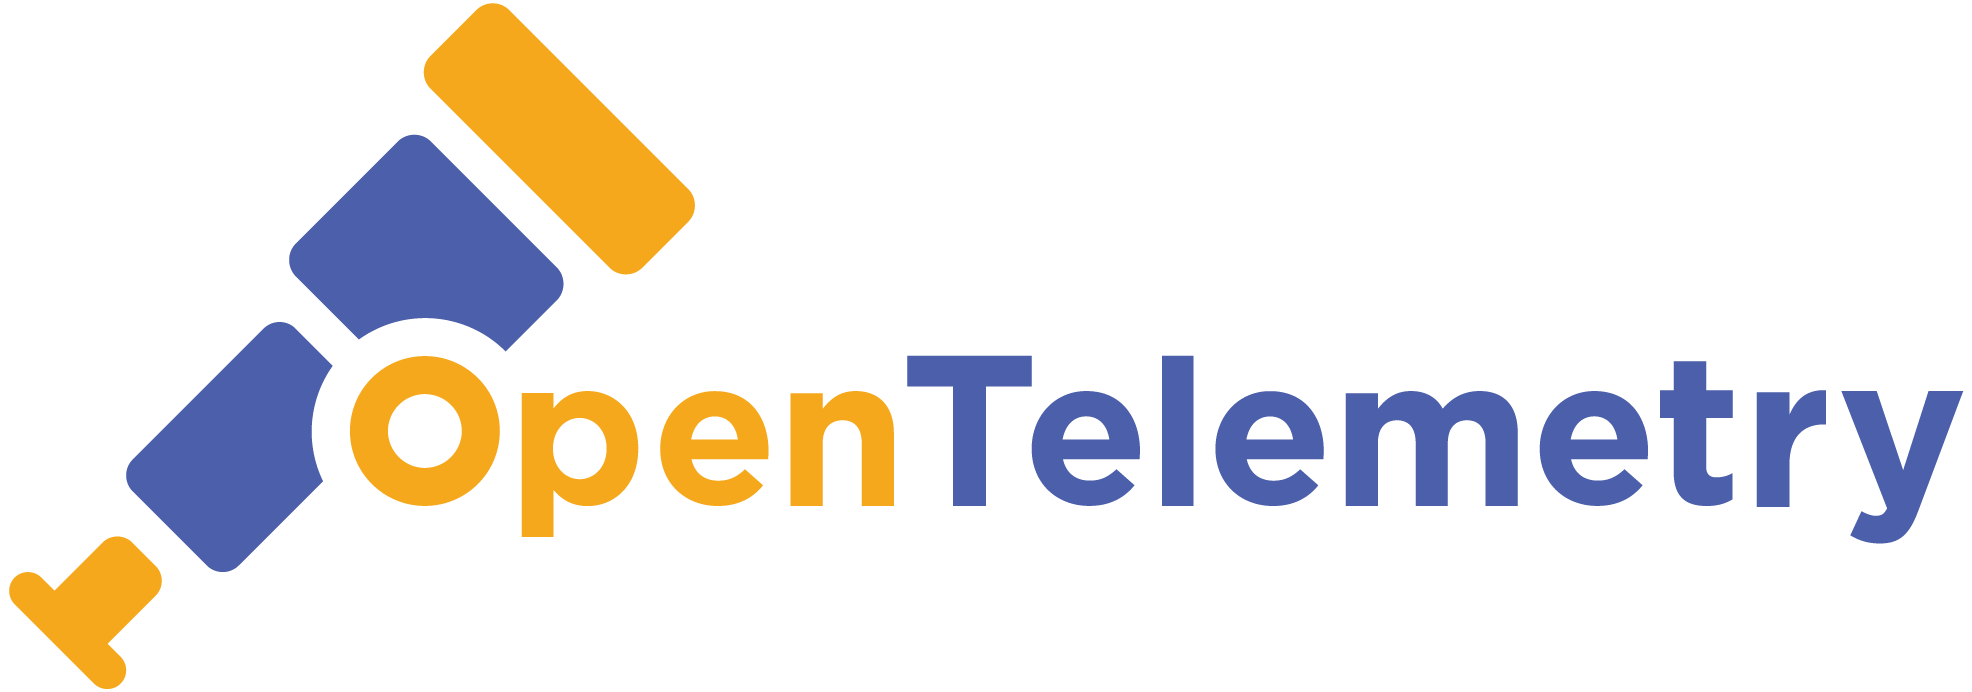 OpenTelemetry — An observability framework for cloud-native software.